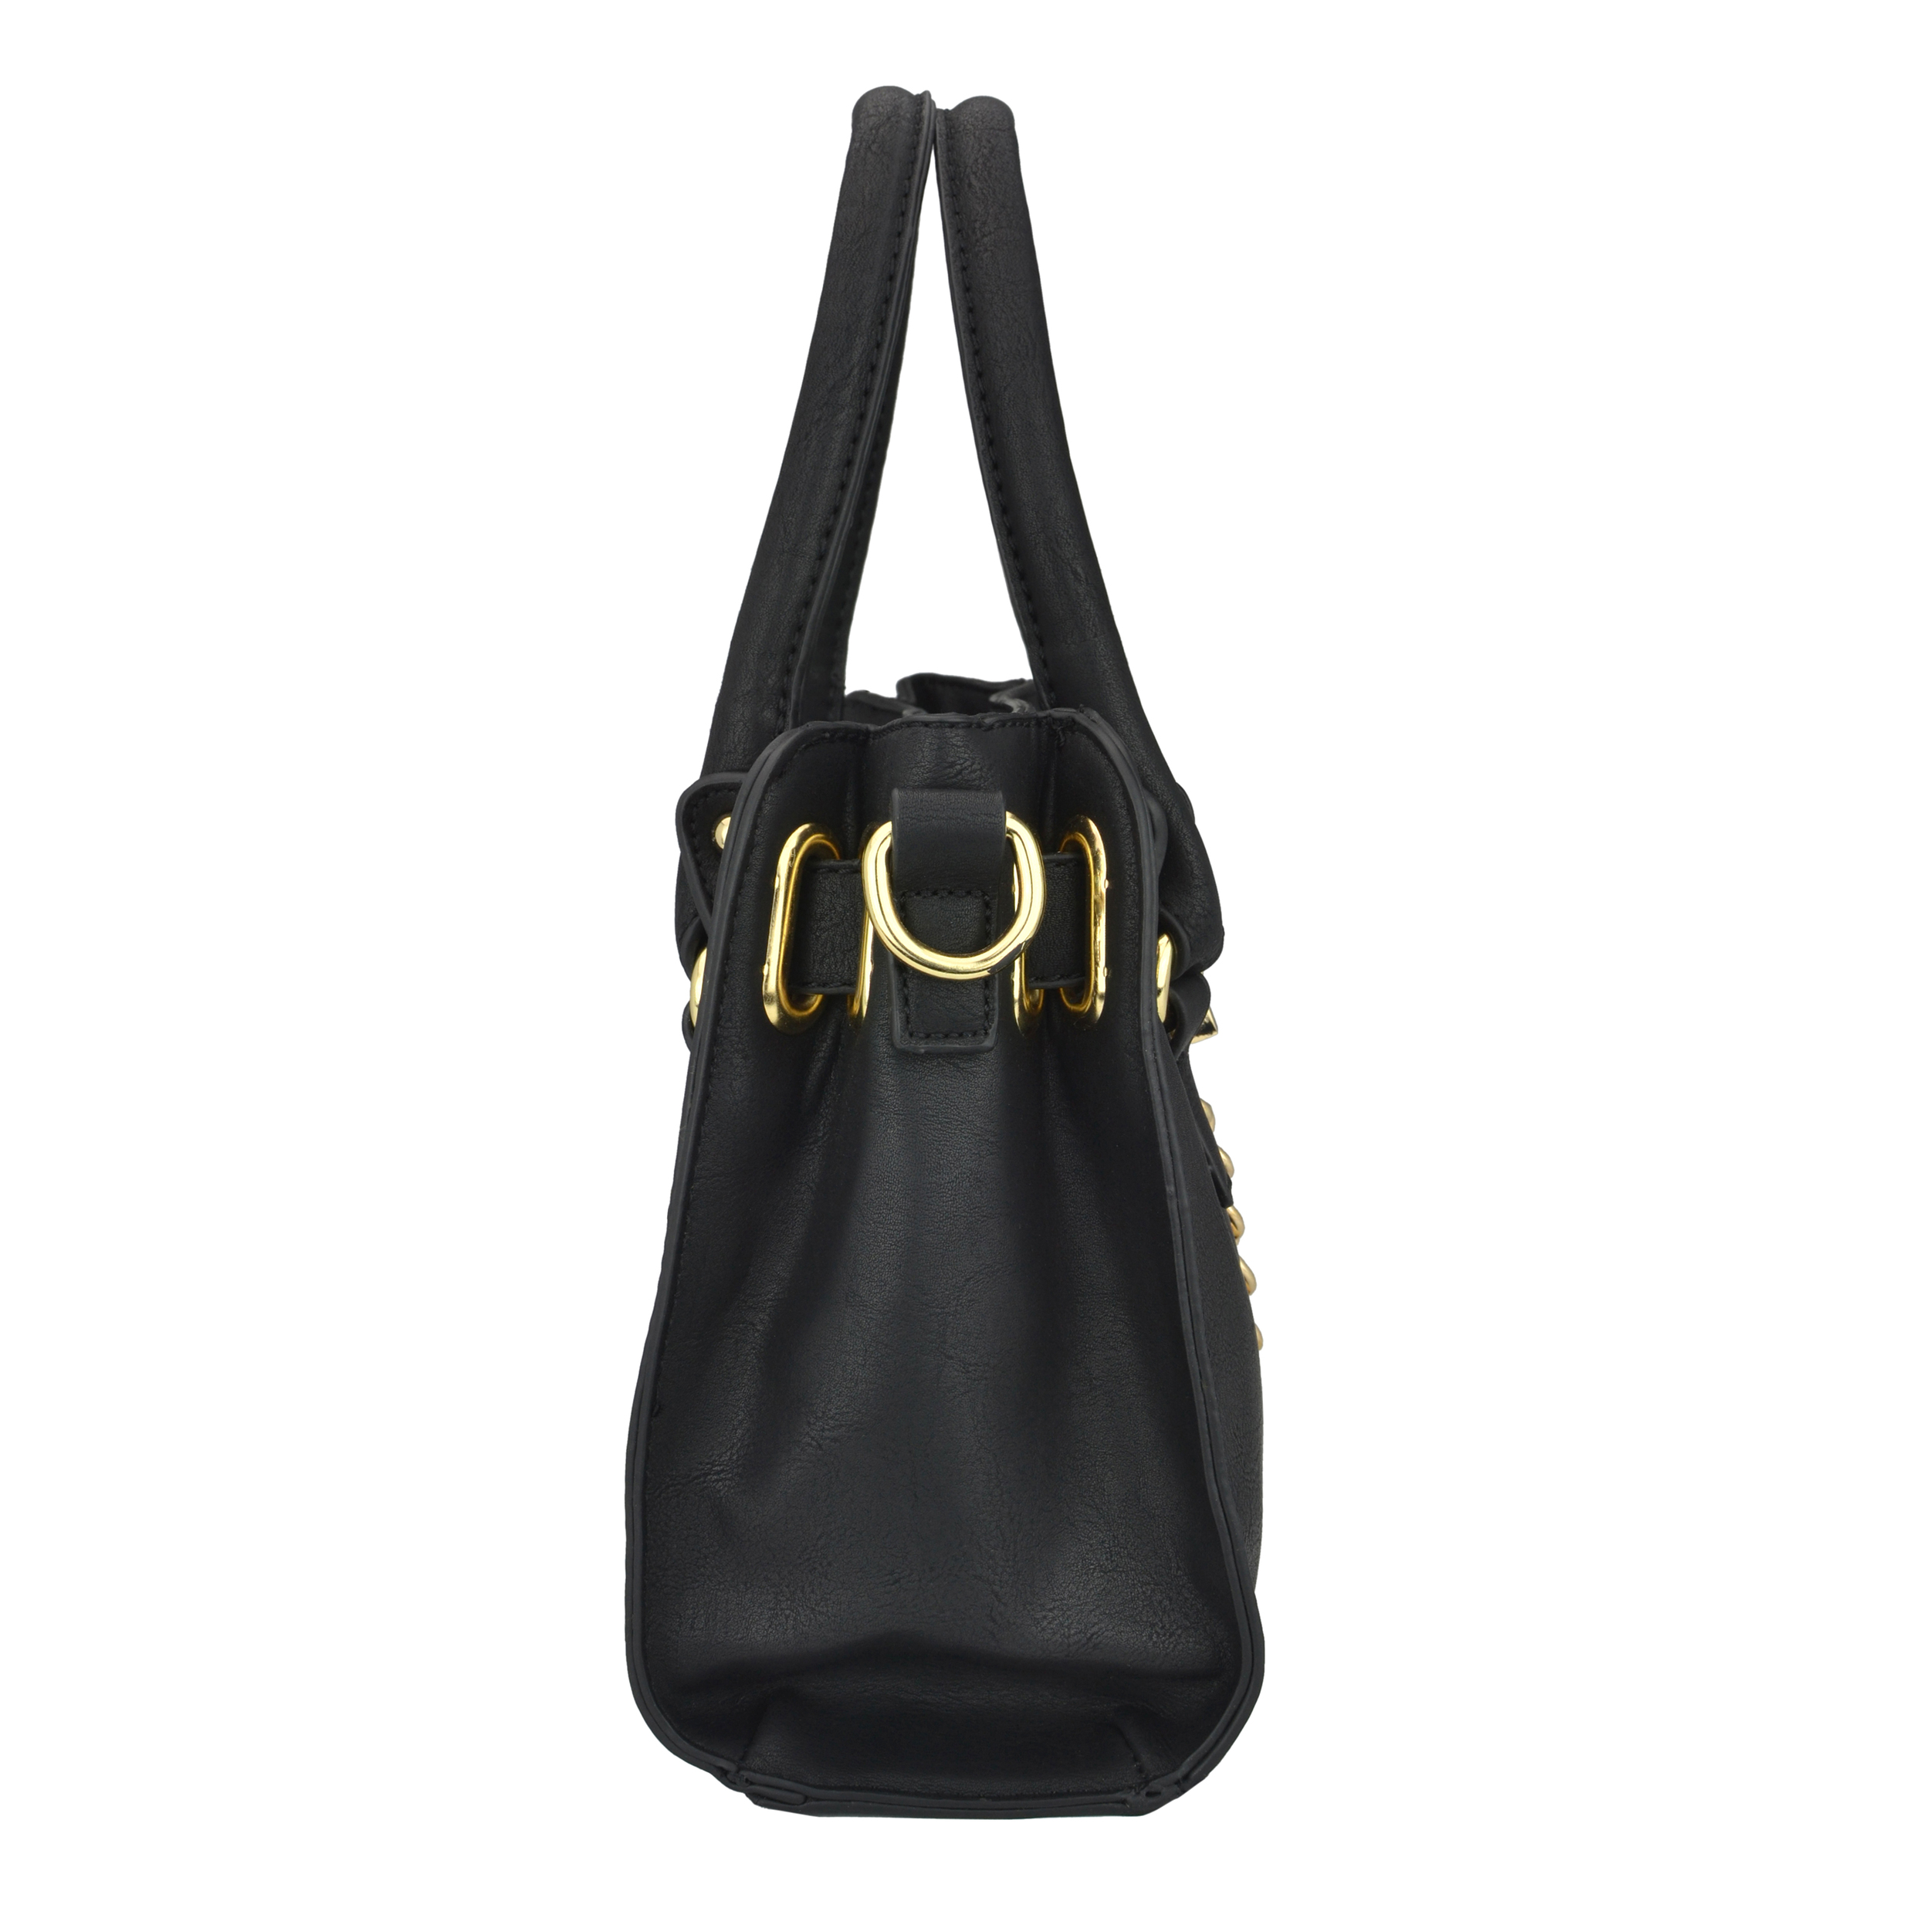 NERYS black top handle tote purse side image